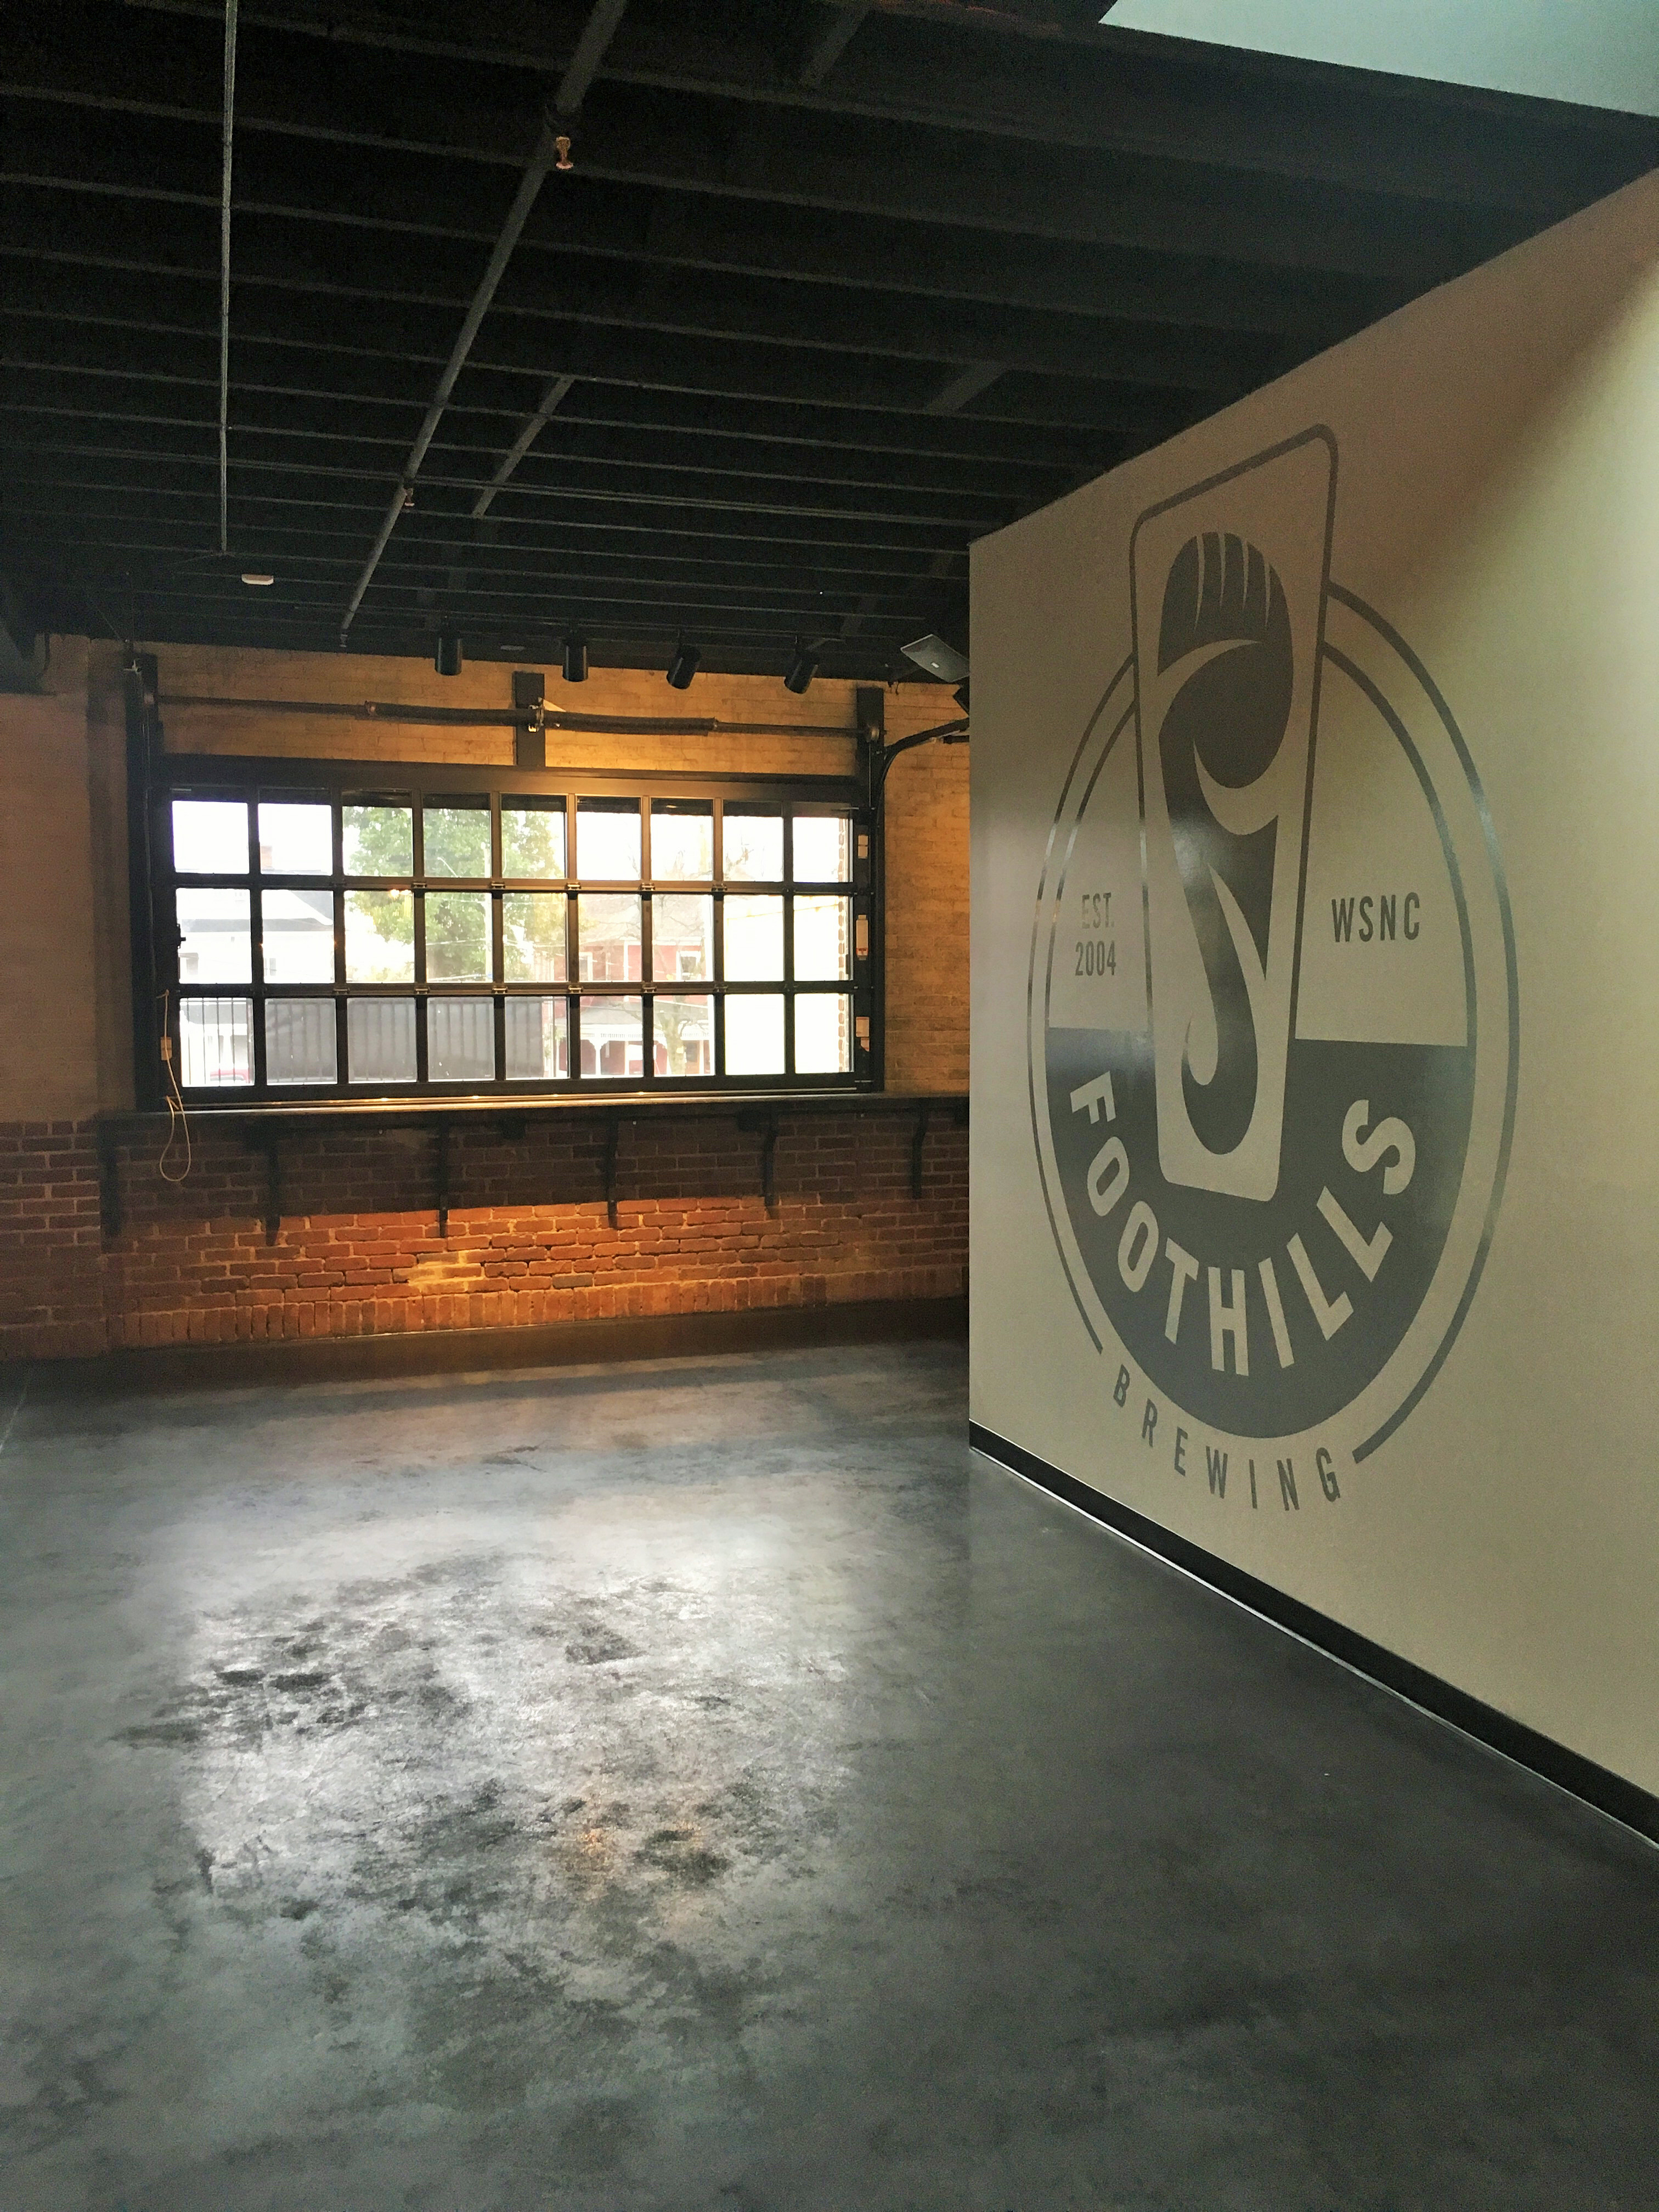 hardwood floors winston salem of historic wilsoncovingtonconstruction regarding venue in downtown winston salem nc by means of a lift the space was connected to the neighboring foothills brewpub and restaurant allowing the kitchen